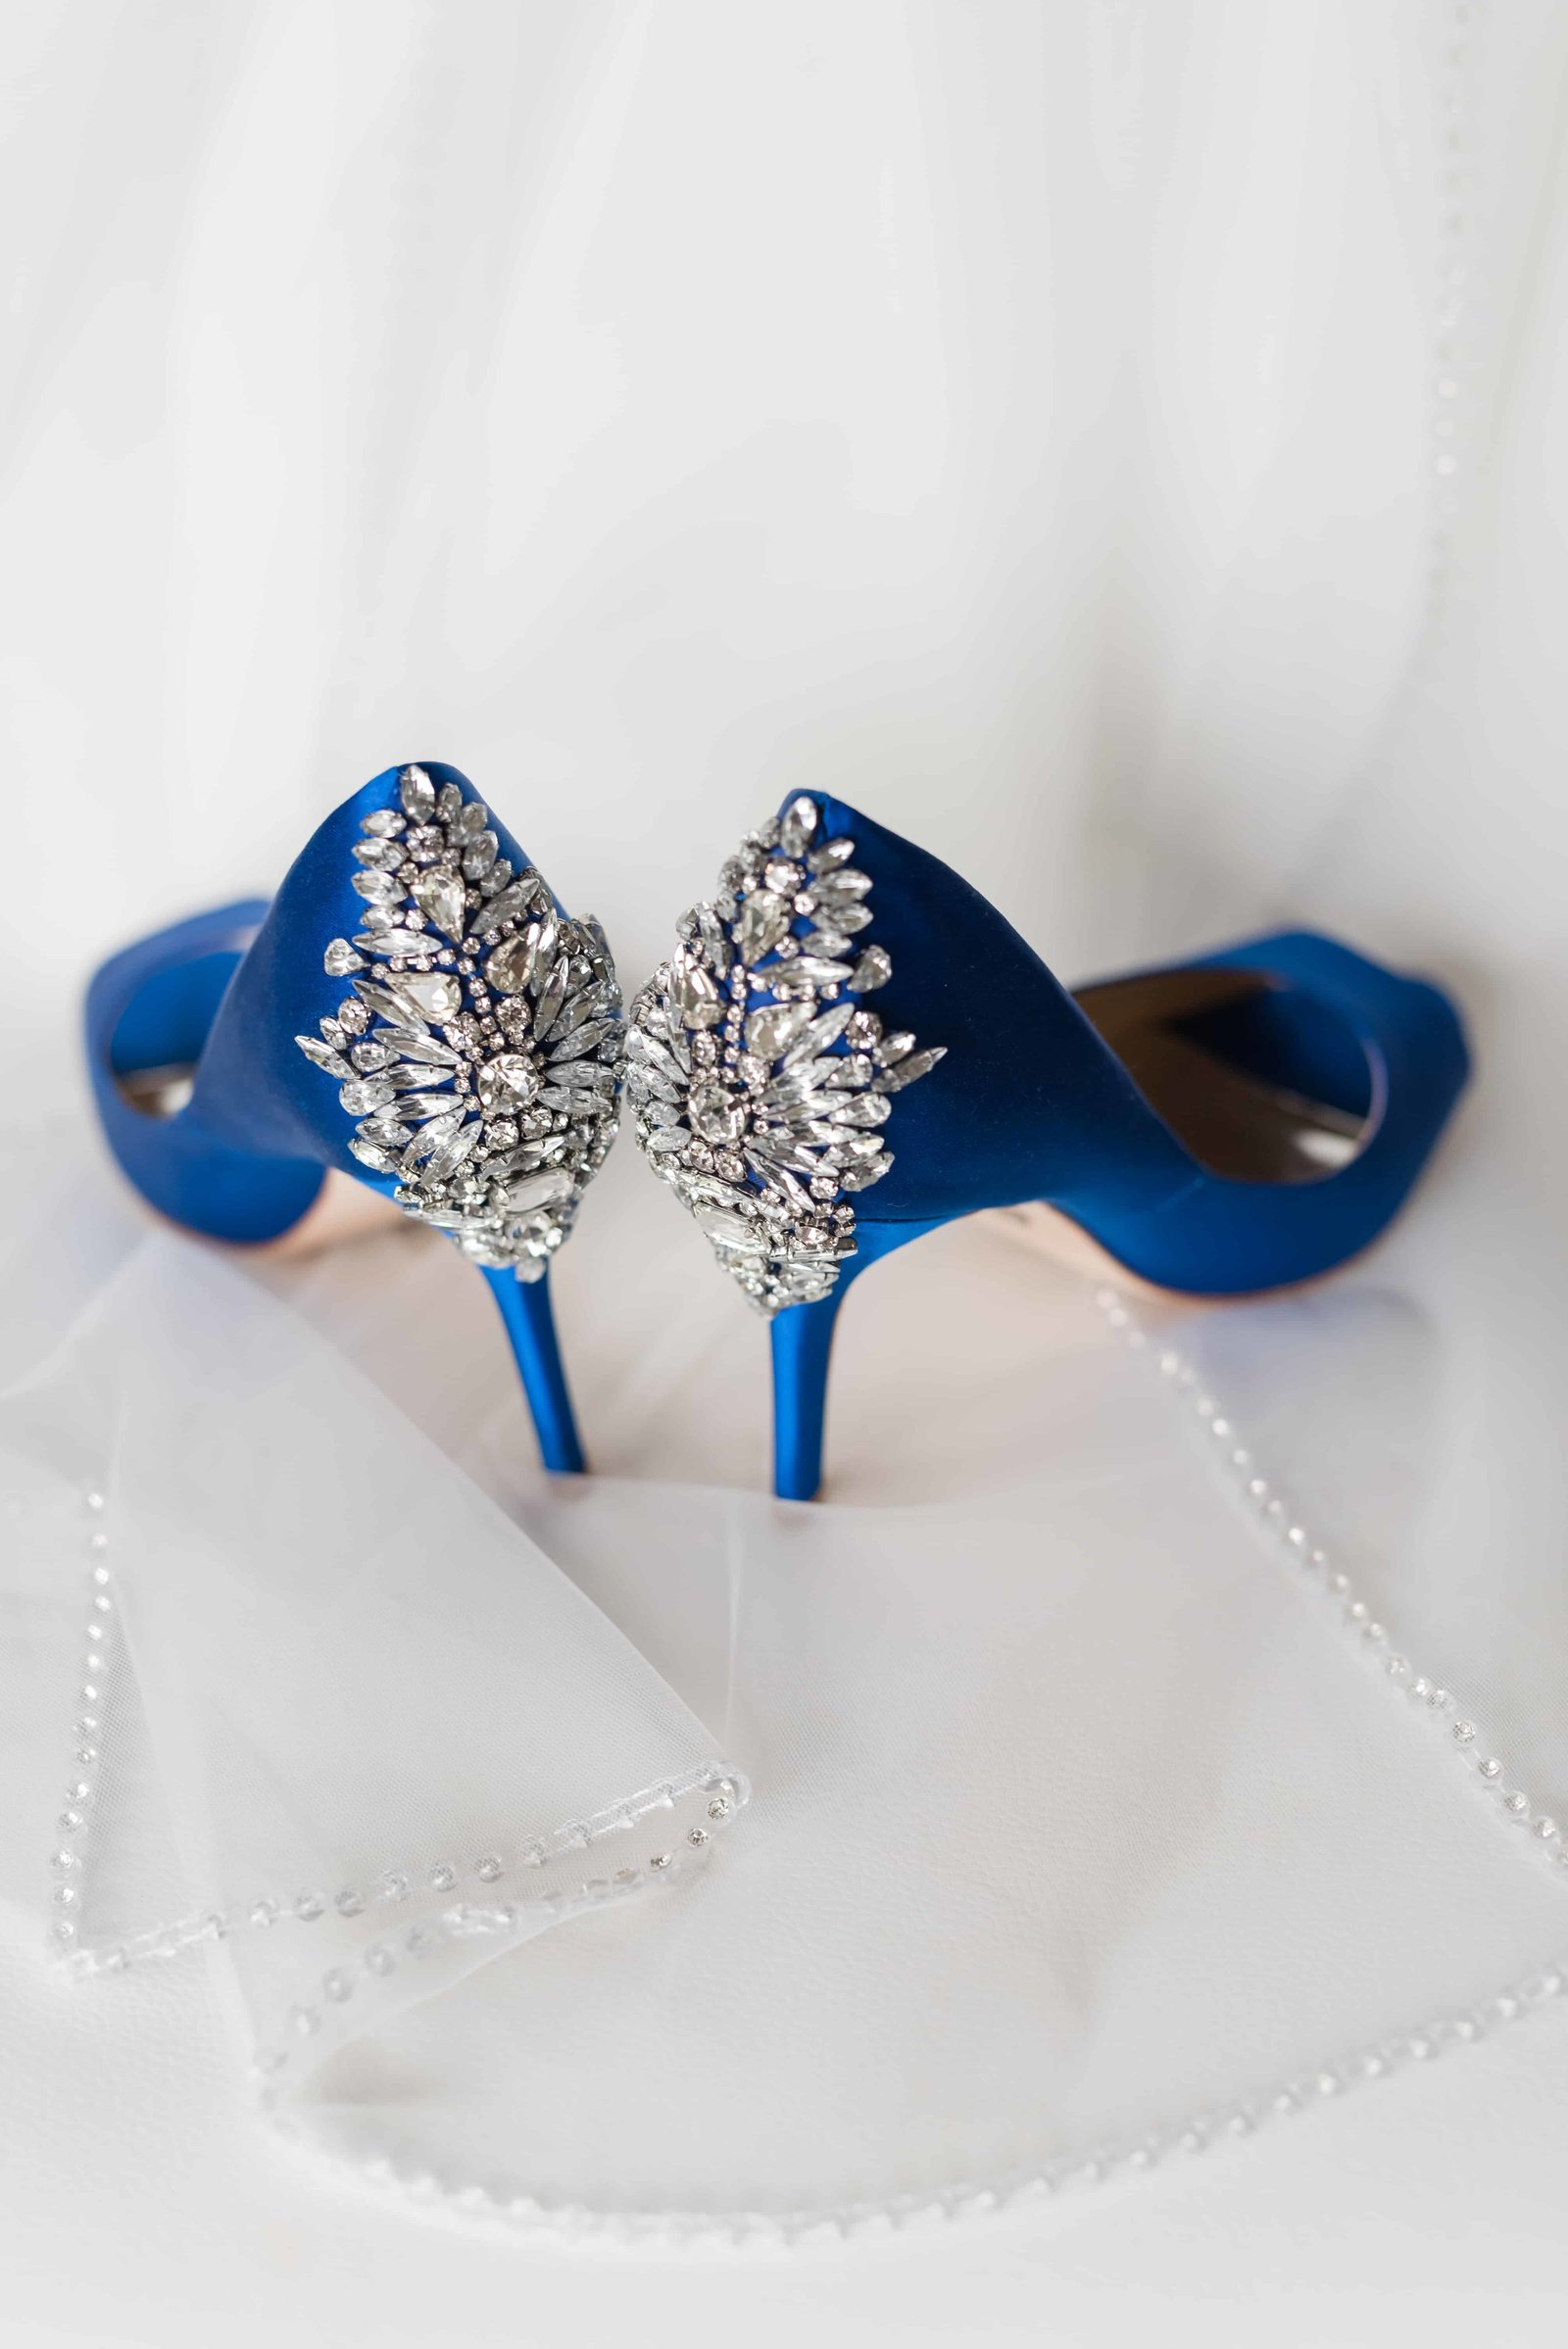 Blue Sparkle Wedding shoes detail shot